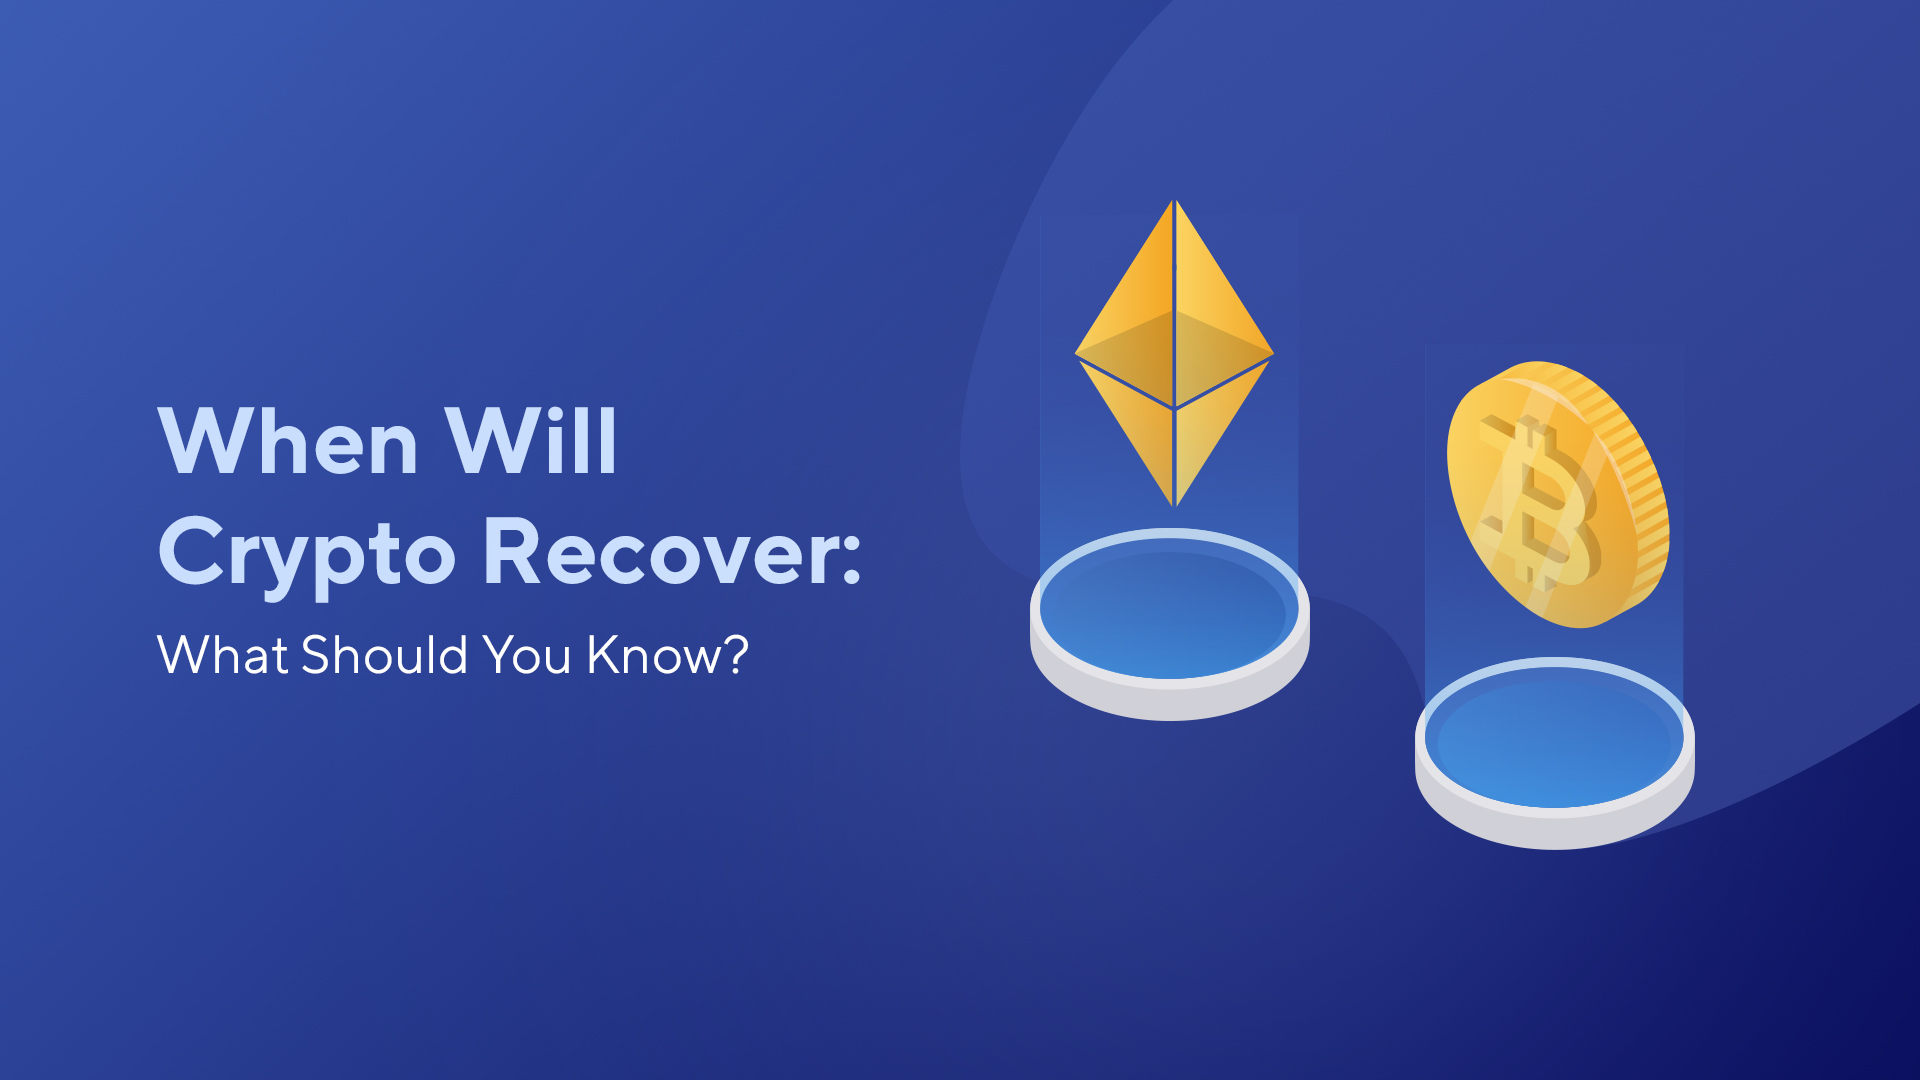 When Will Crypto Recover: What Should You Know?